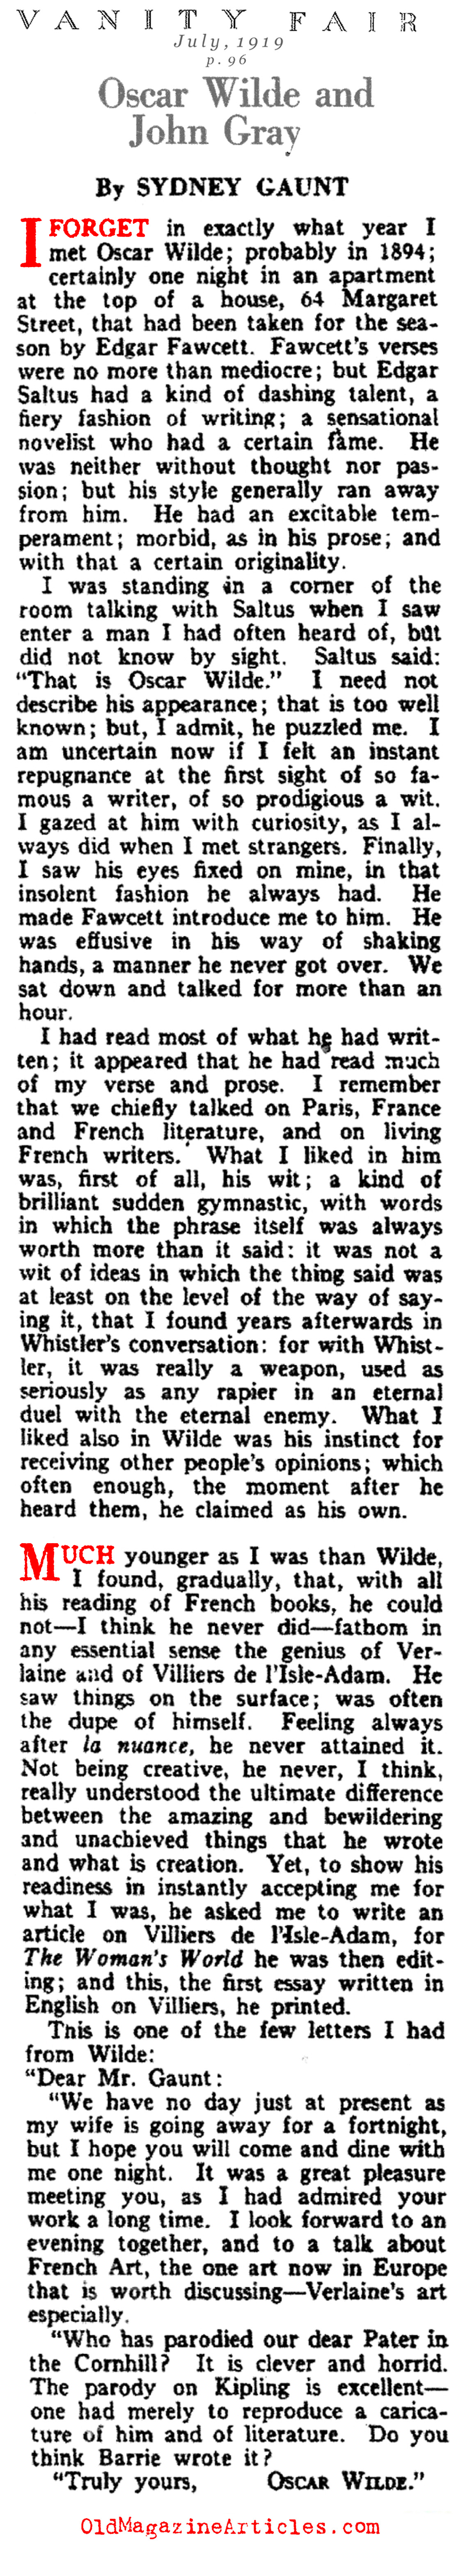 Oscar Wilde: a Personal Remembrance (Vanity Fair Magazine, 1919)